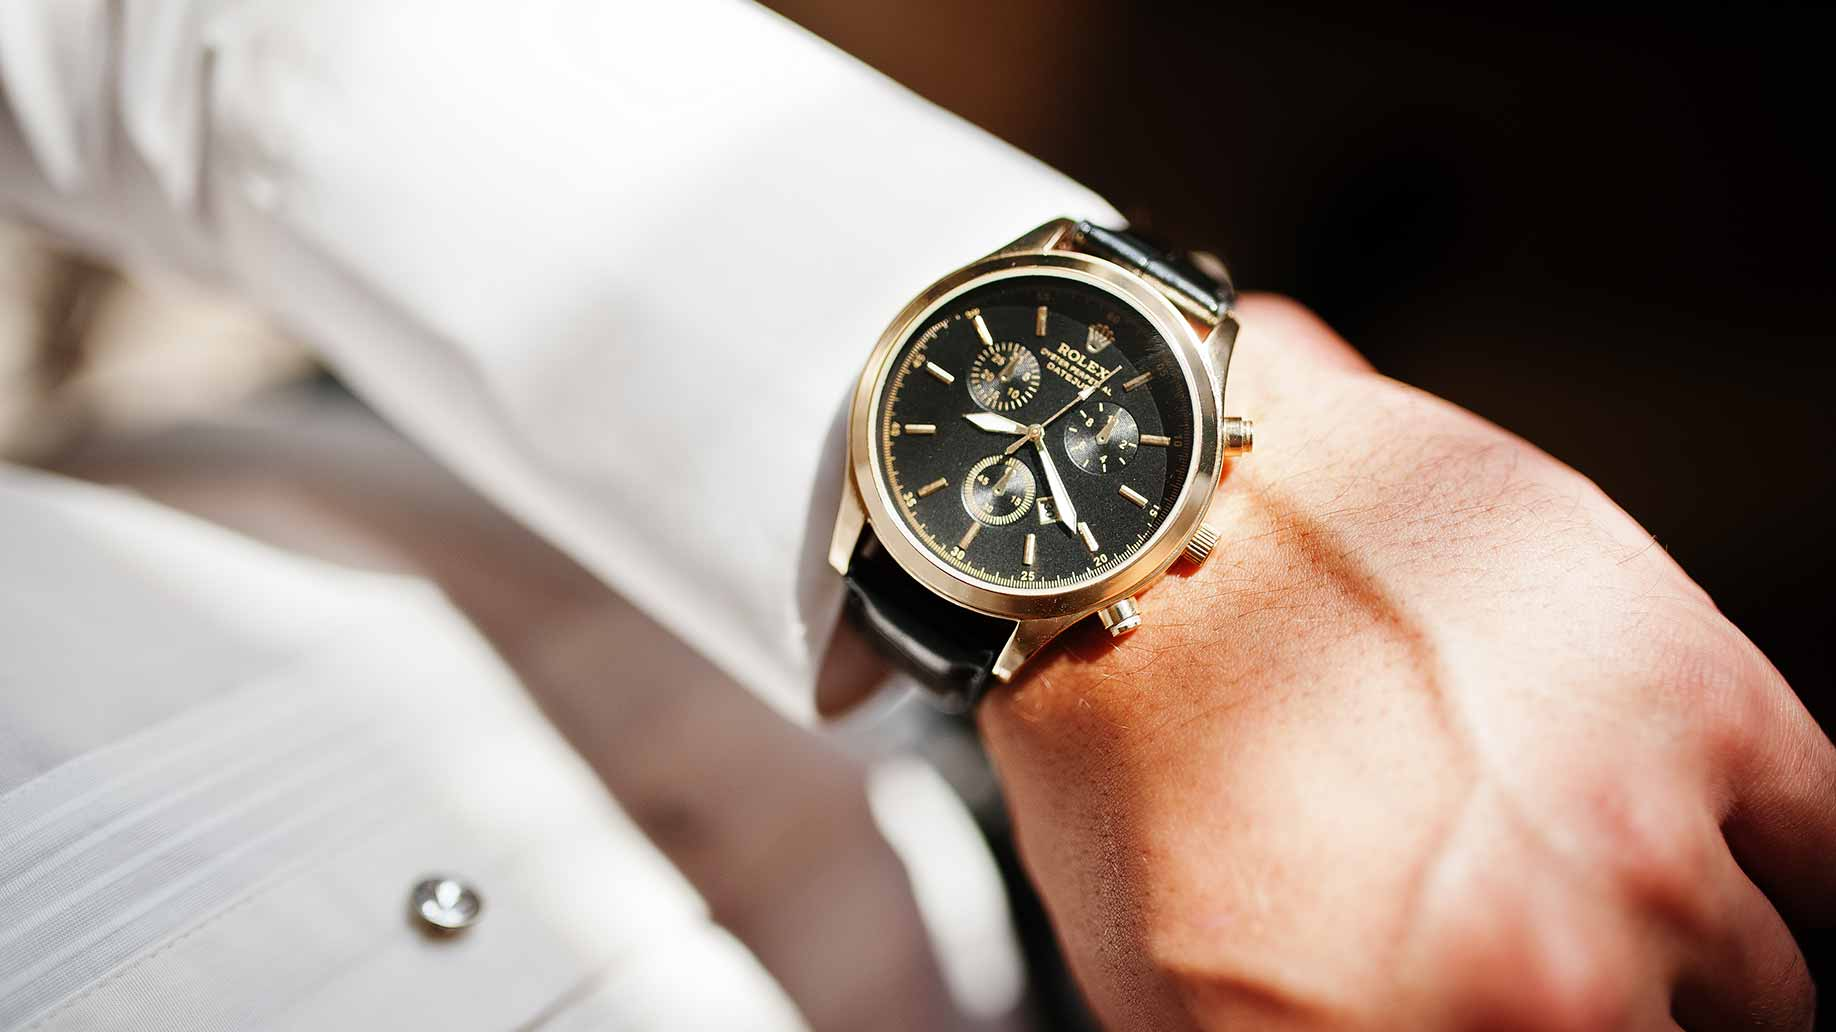 expensive rolex watch on hand